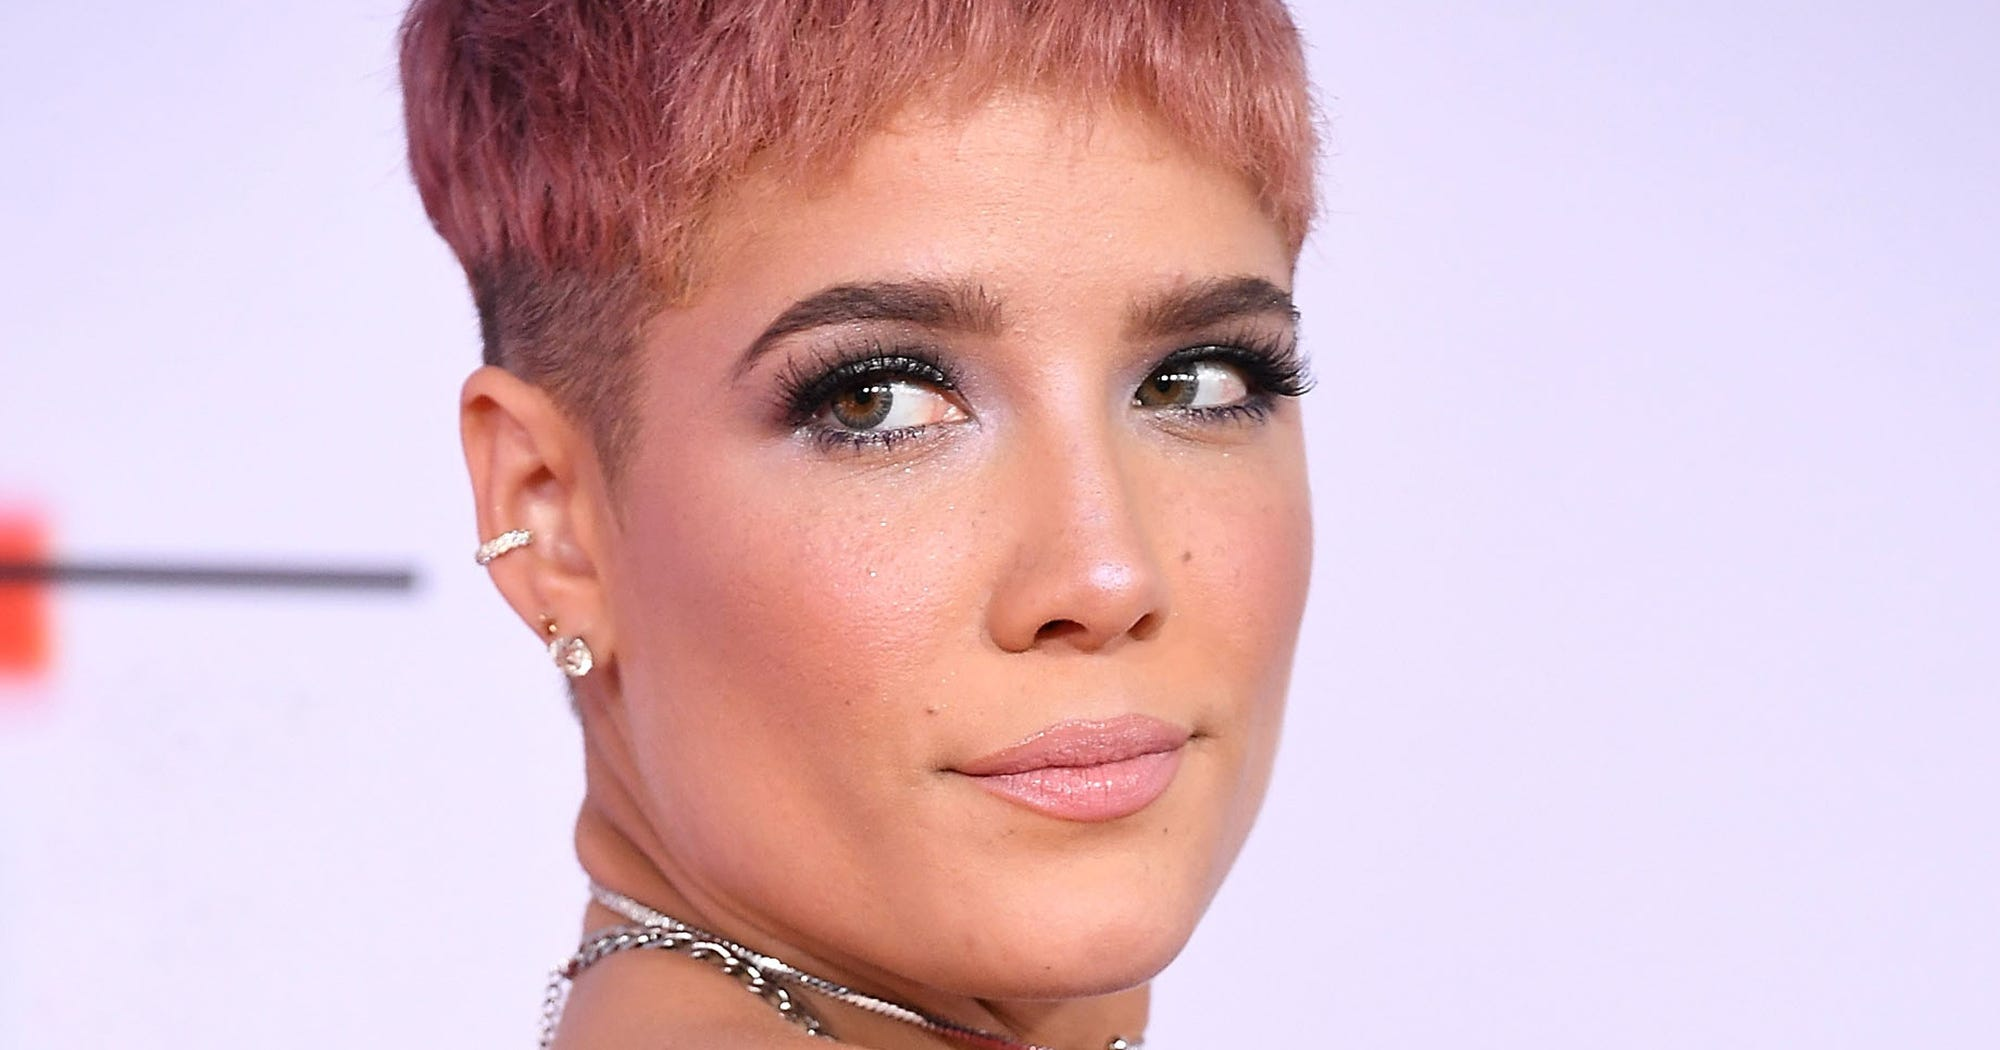 The Pastel Hair Color Trend Taking Over Hollywood